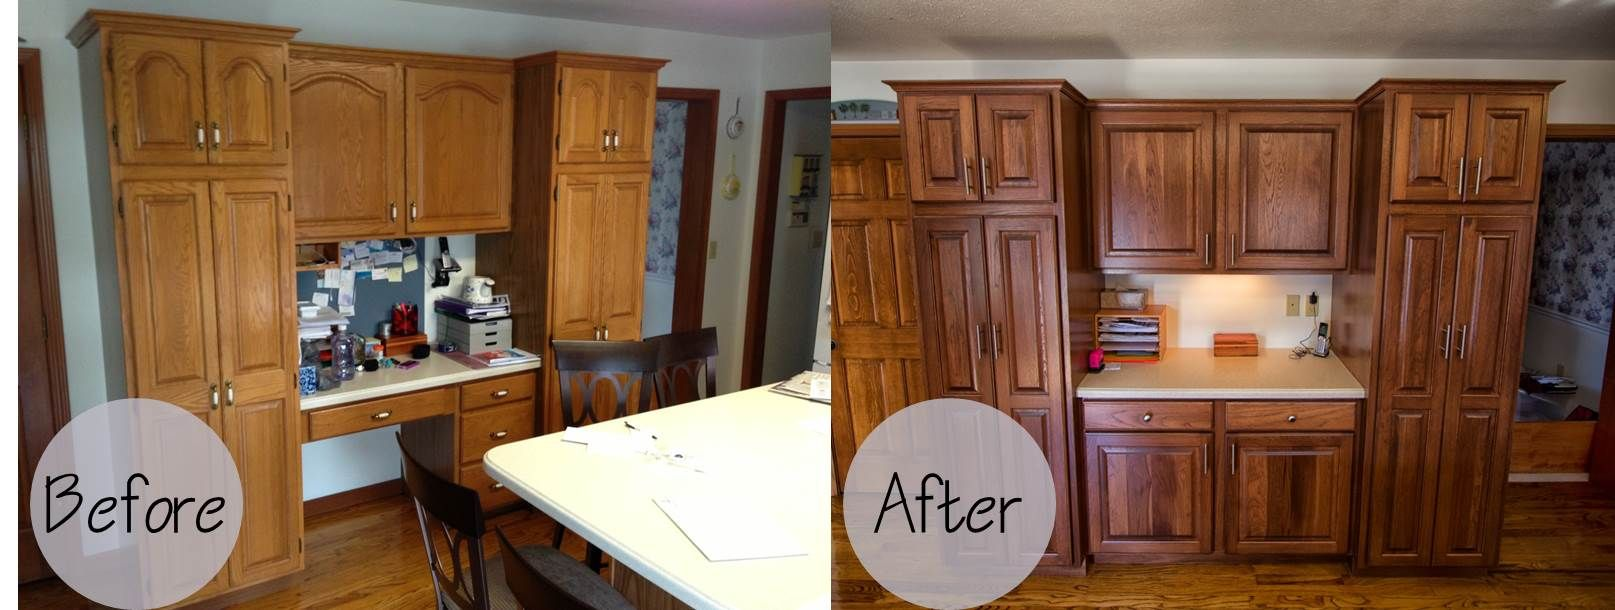 Cabinets Refacing How To Google Search Shaker Style Kitchen Cabinets Stained Kitchen Cabinets Refinish Kitchen Cabinets